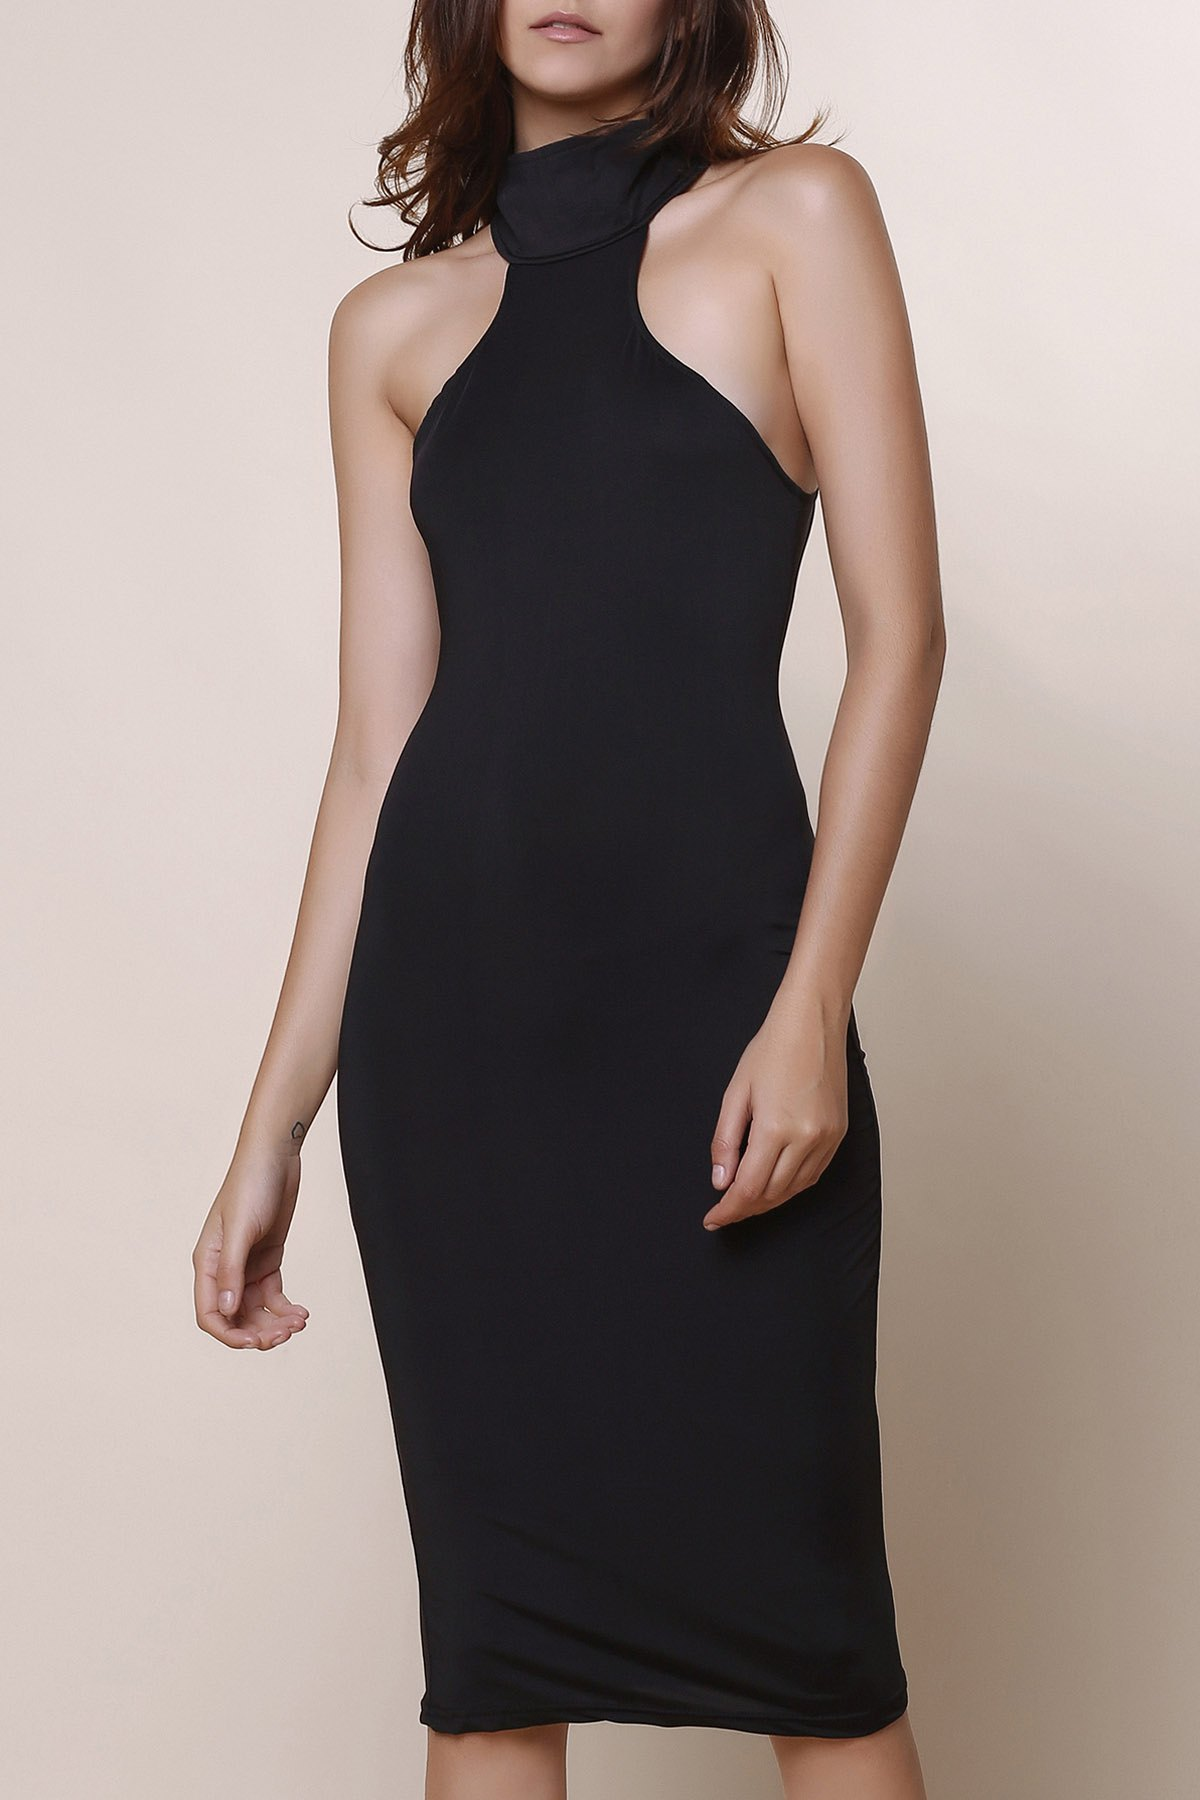 Elegant Turtle Neck Solid Color Hollow Out Sleeveless Women's Bodycon Dress - BLACK ONE SIZE(FIT SIZE XS TO M)